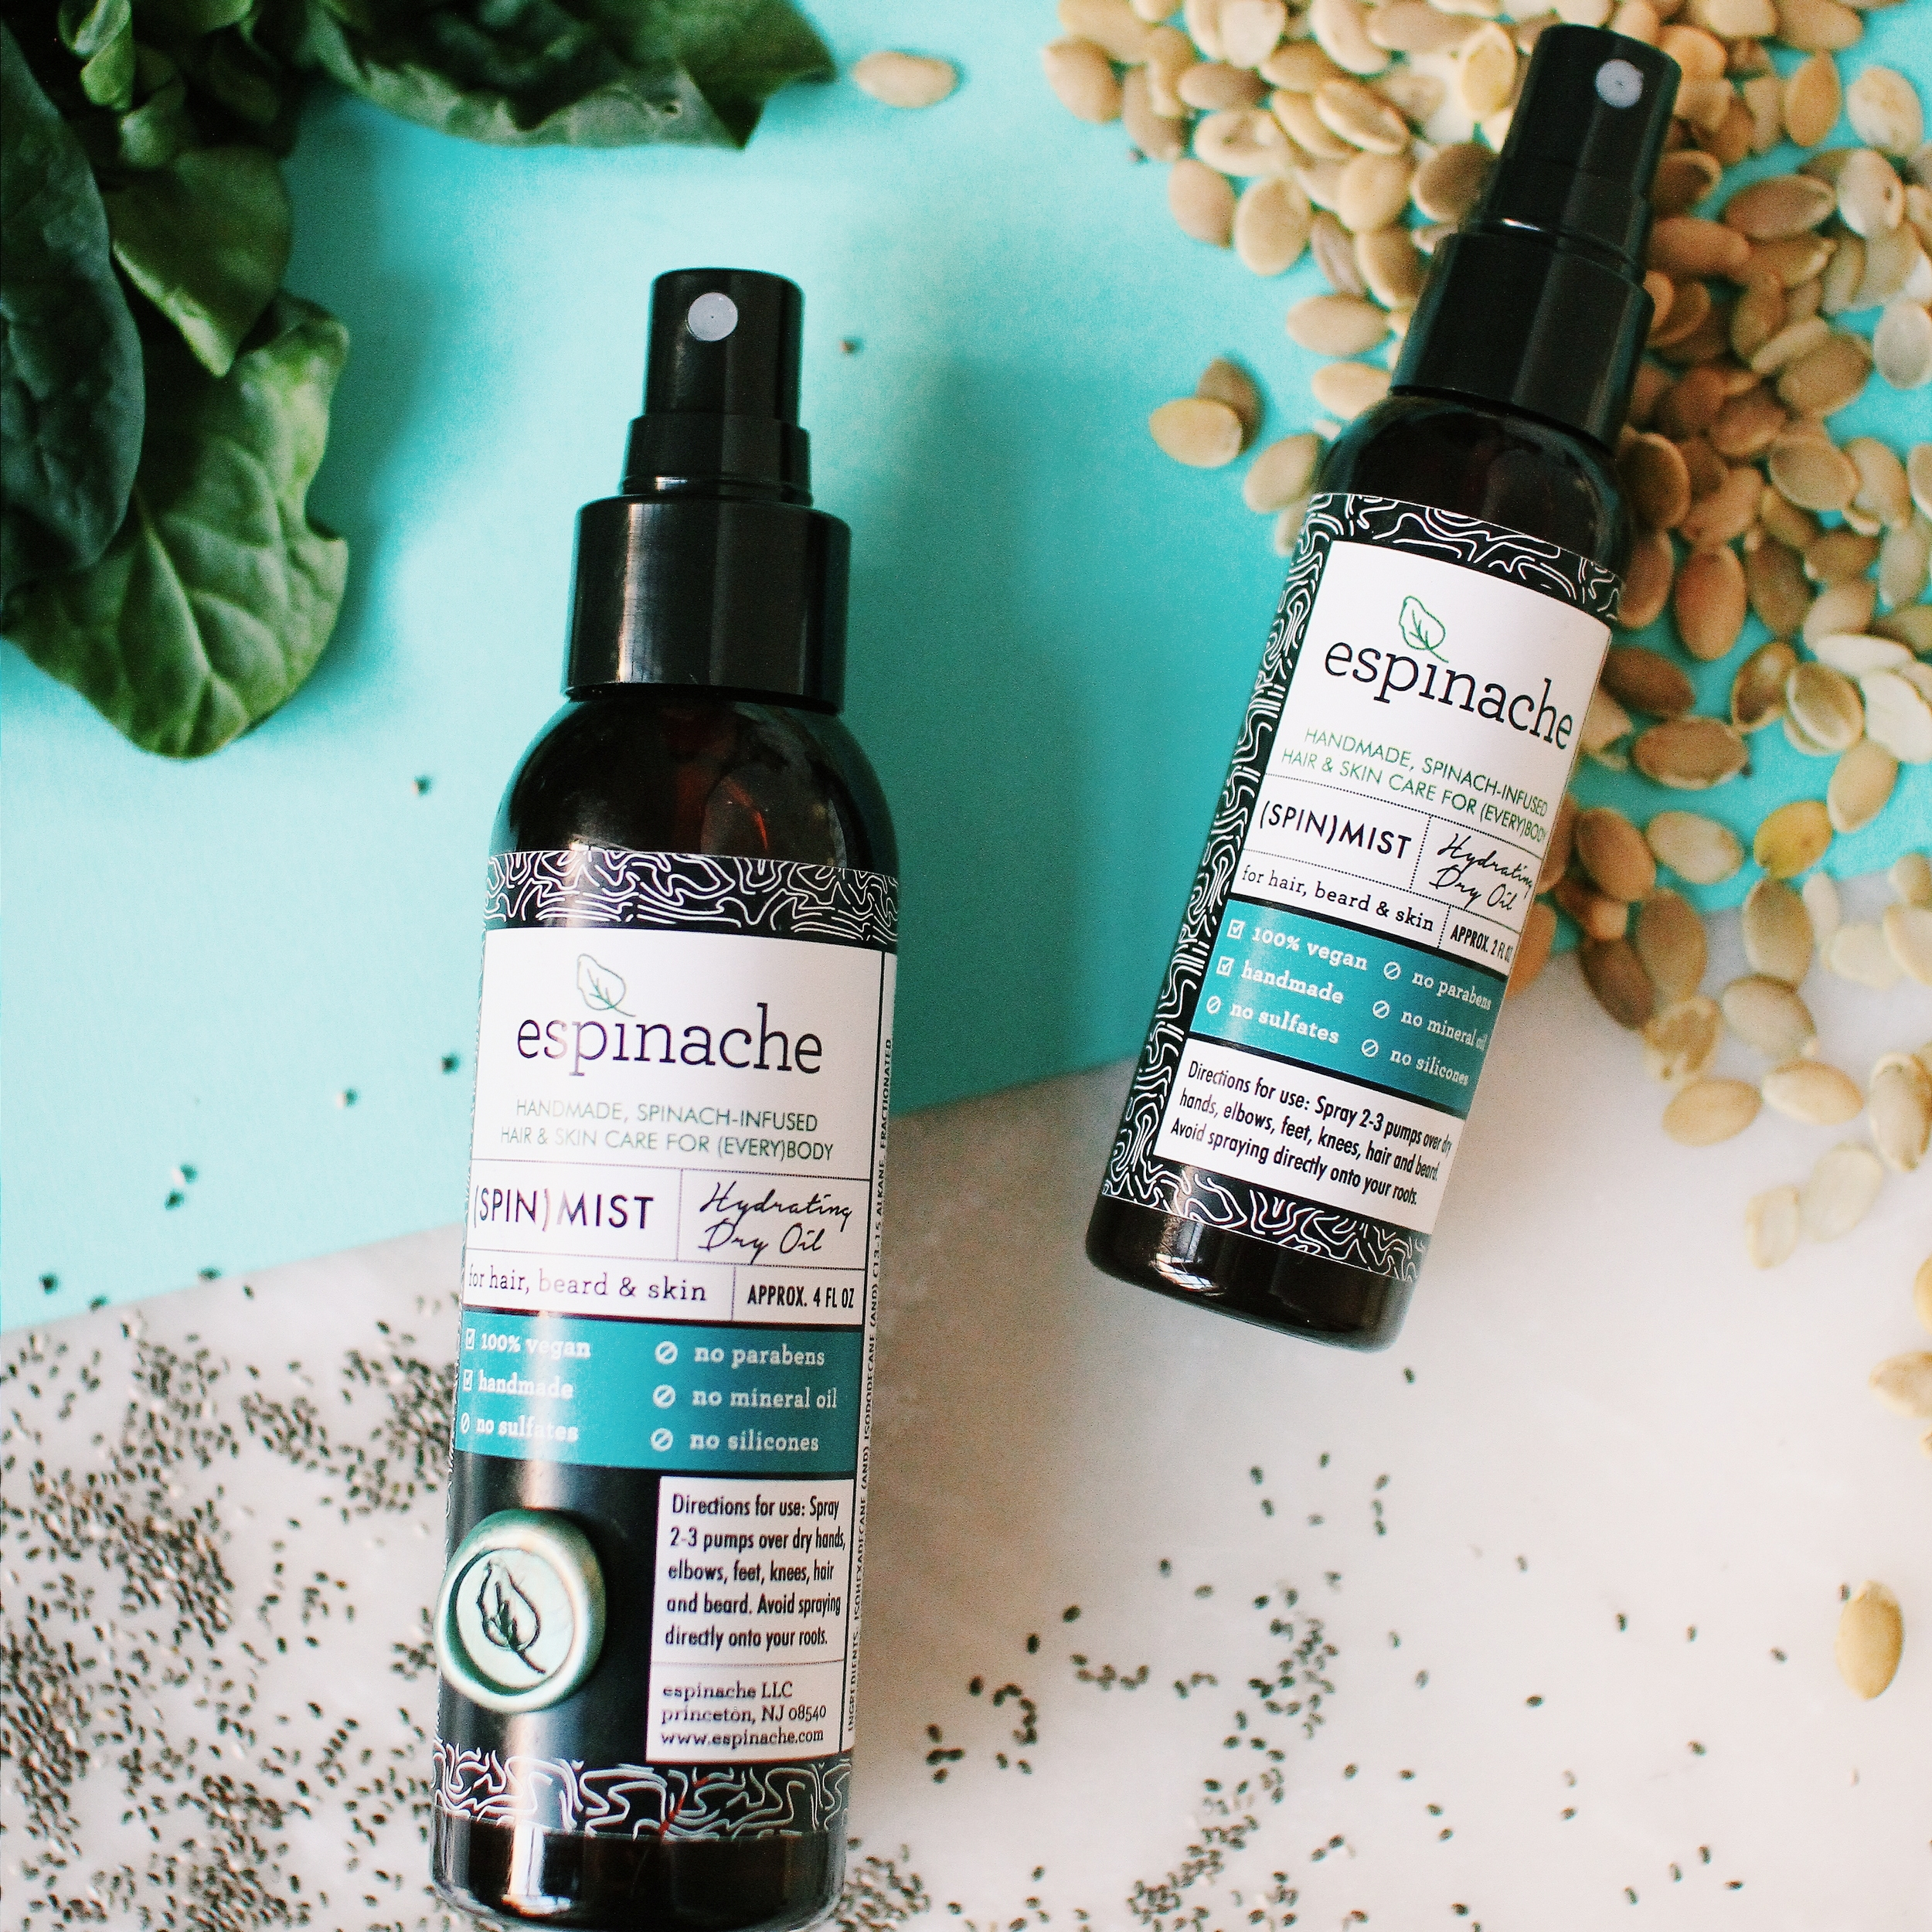 (SPIN)MIST - If DIY isn't quite your thing, treat your hair and skin to the potent benefits of pumpkin seed oil - perfect for fall.🍂 We carefully selected Pumpkin Seed Oil as a primary ingredient in our (SPIN)Mist Hydrating Dry Oilbecause of its uncanny ability to deeply hydrate both hair and skin.